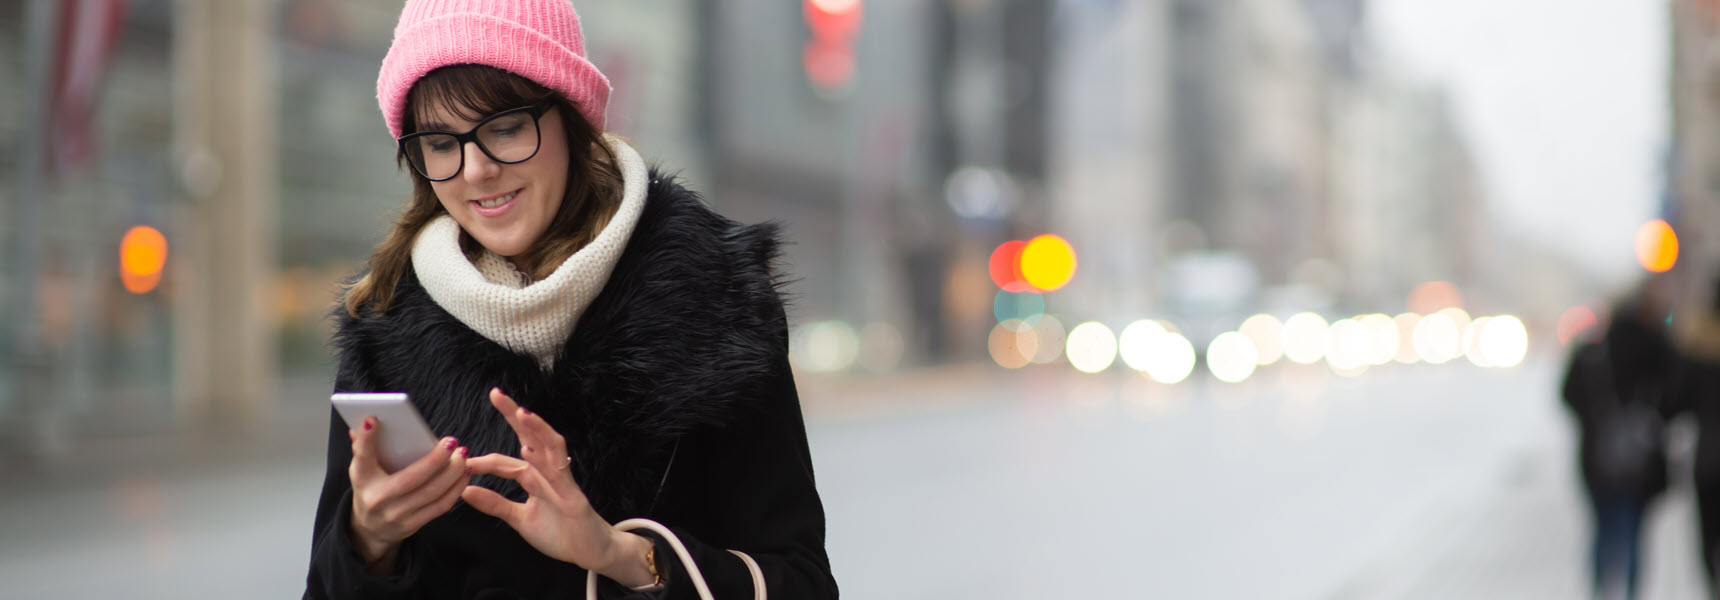 woman in winter coat and pink hat reading about the economic outlook for 2020